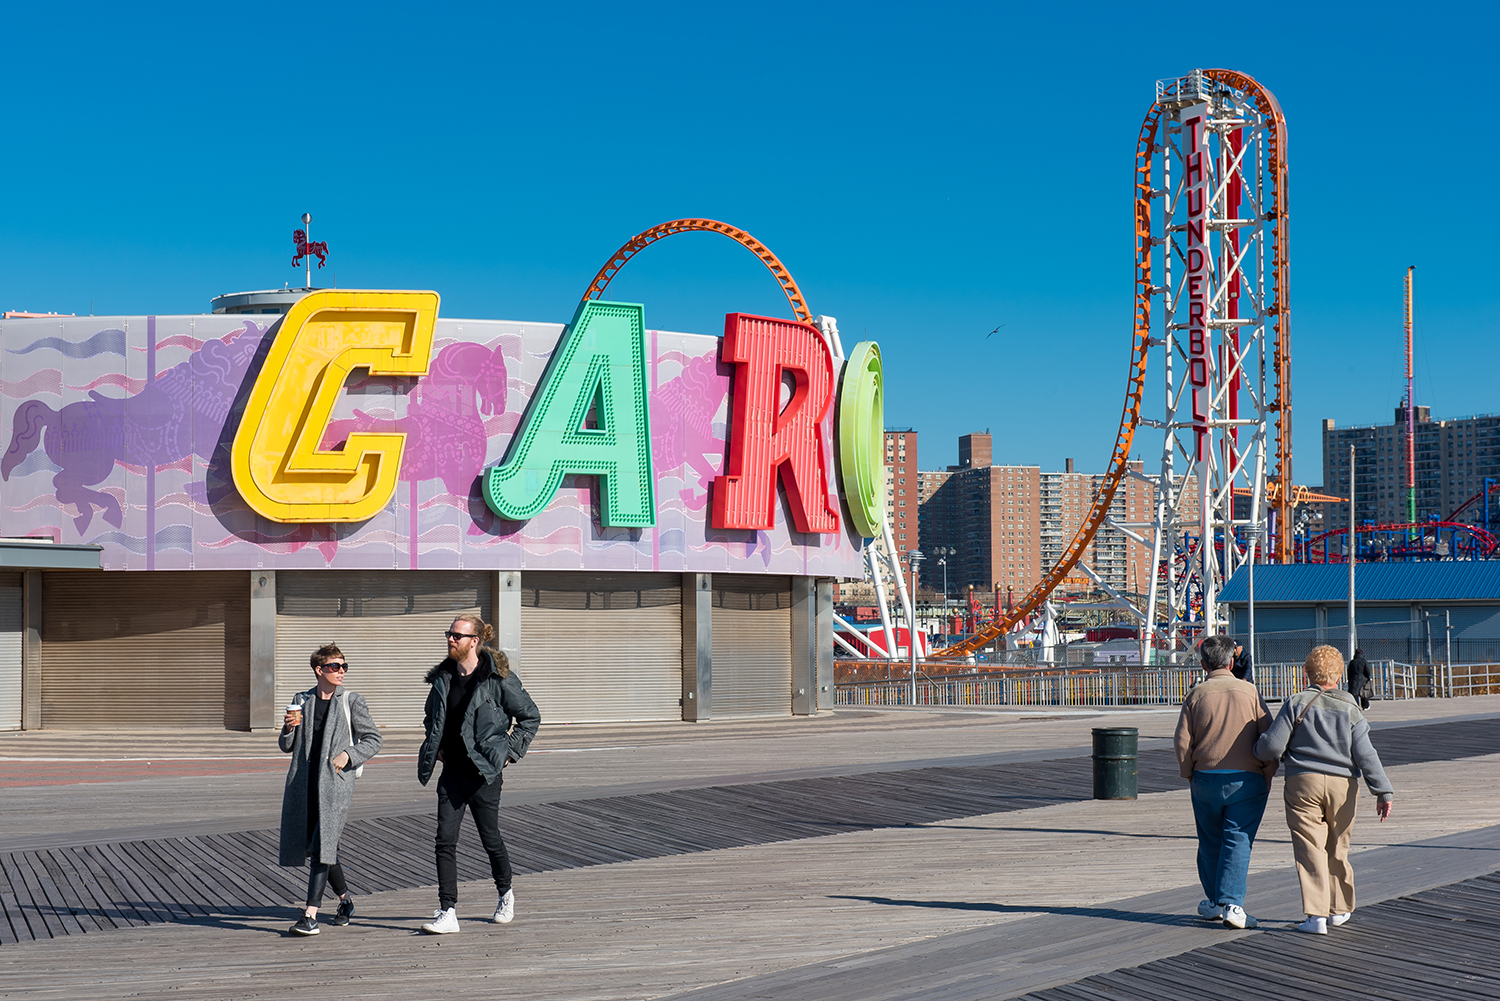 Sneakers required on the boardwalk! For hipsters as well as 'casual couples'...